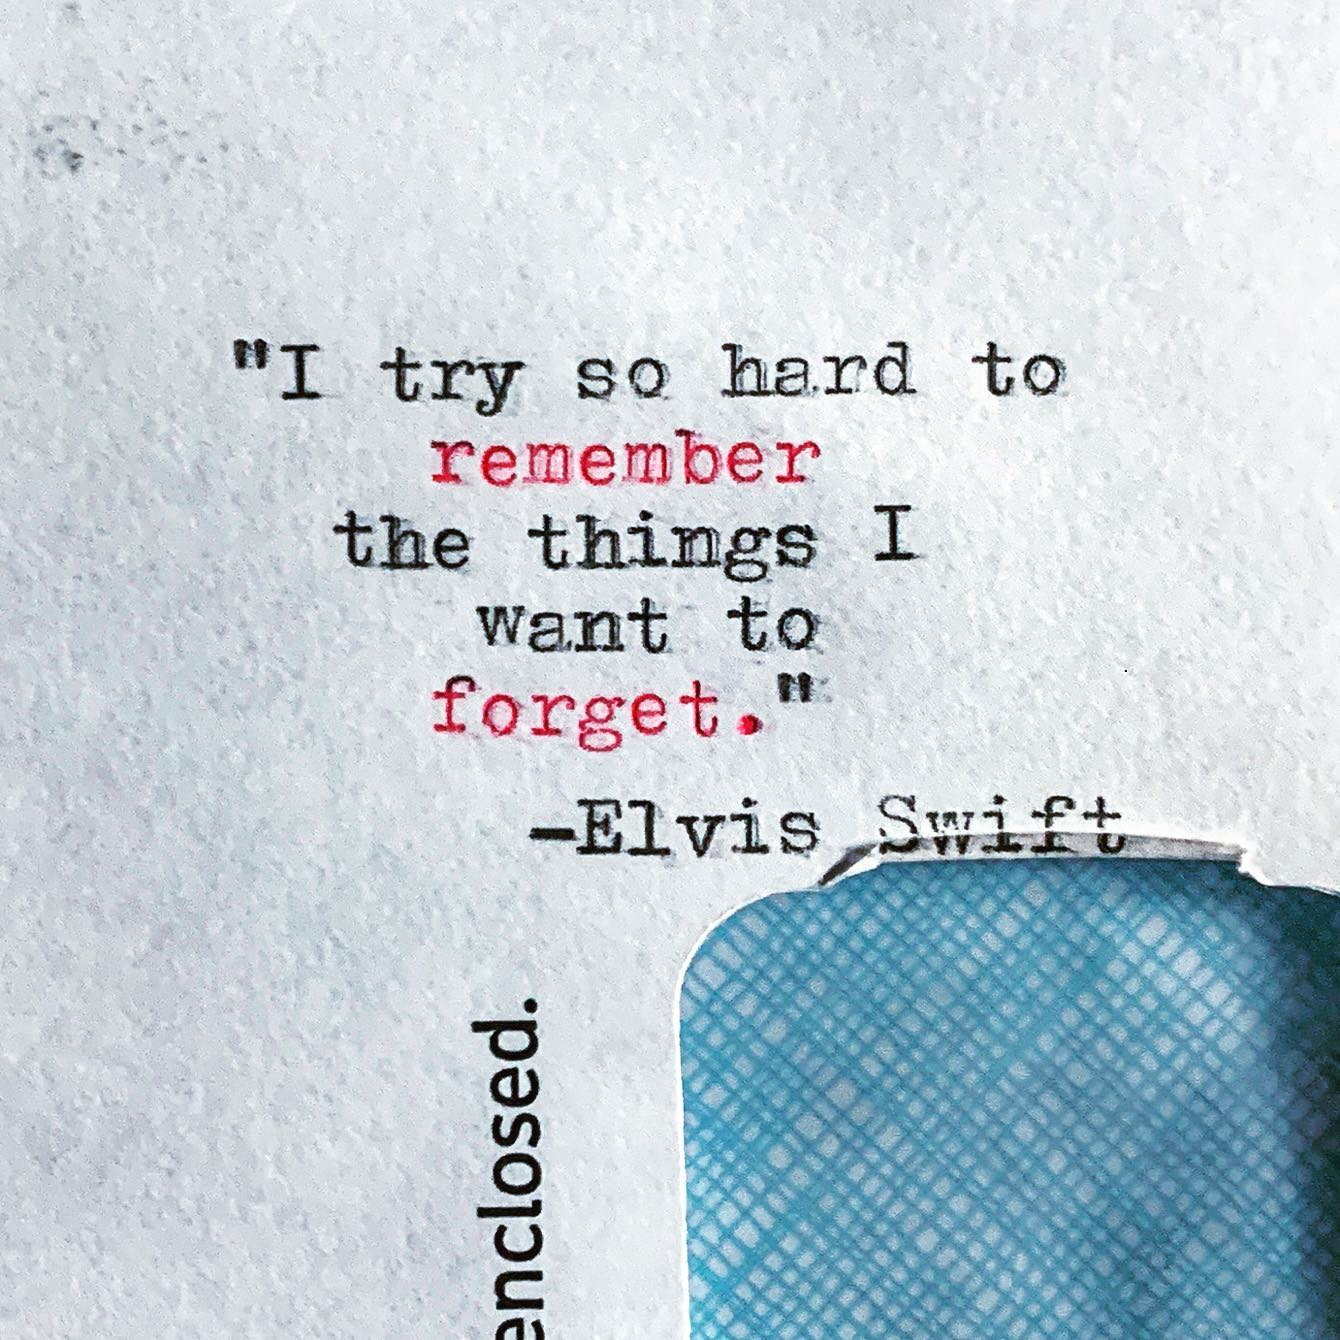 """""""I try so hard to remember the things I want to forget.""""-Elvis Swift#quoteoftheweek #elvisswiftdrygoods #olivettilettera32 #remembertoforget #naplesartdistrict #bayshoreartsdistrict #naplesart #naplesfl"""